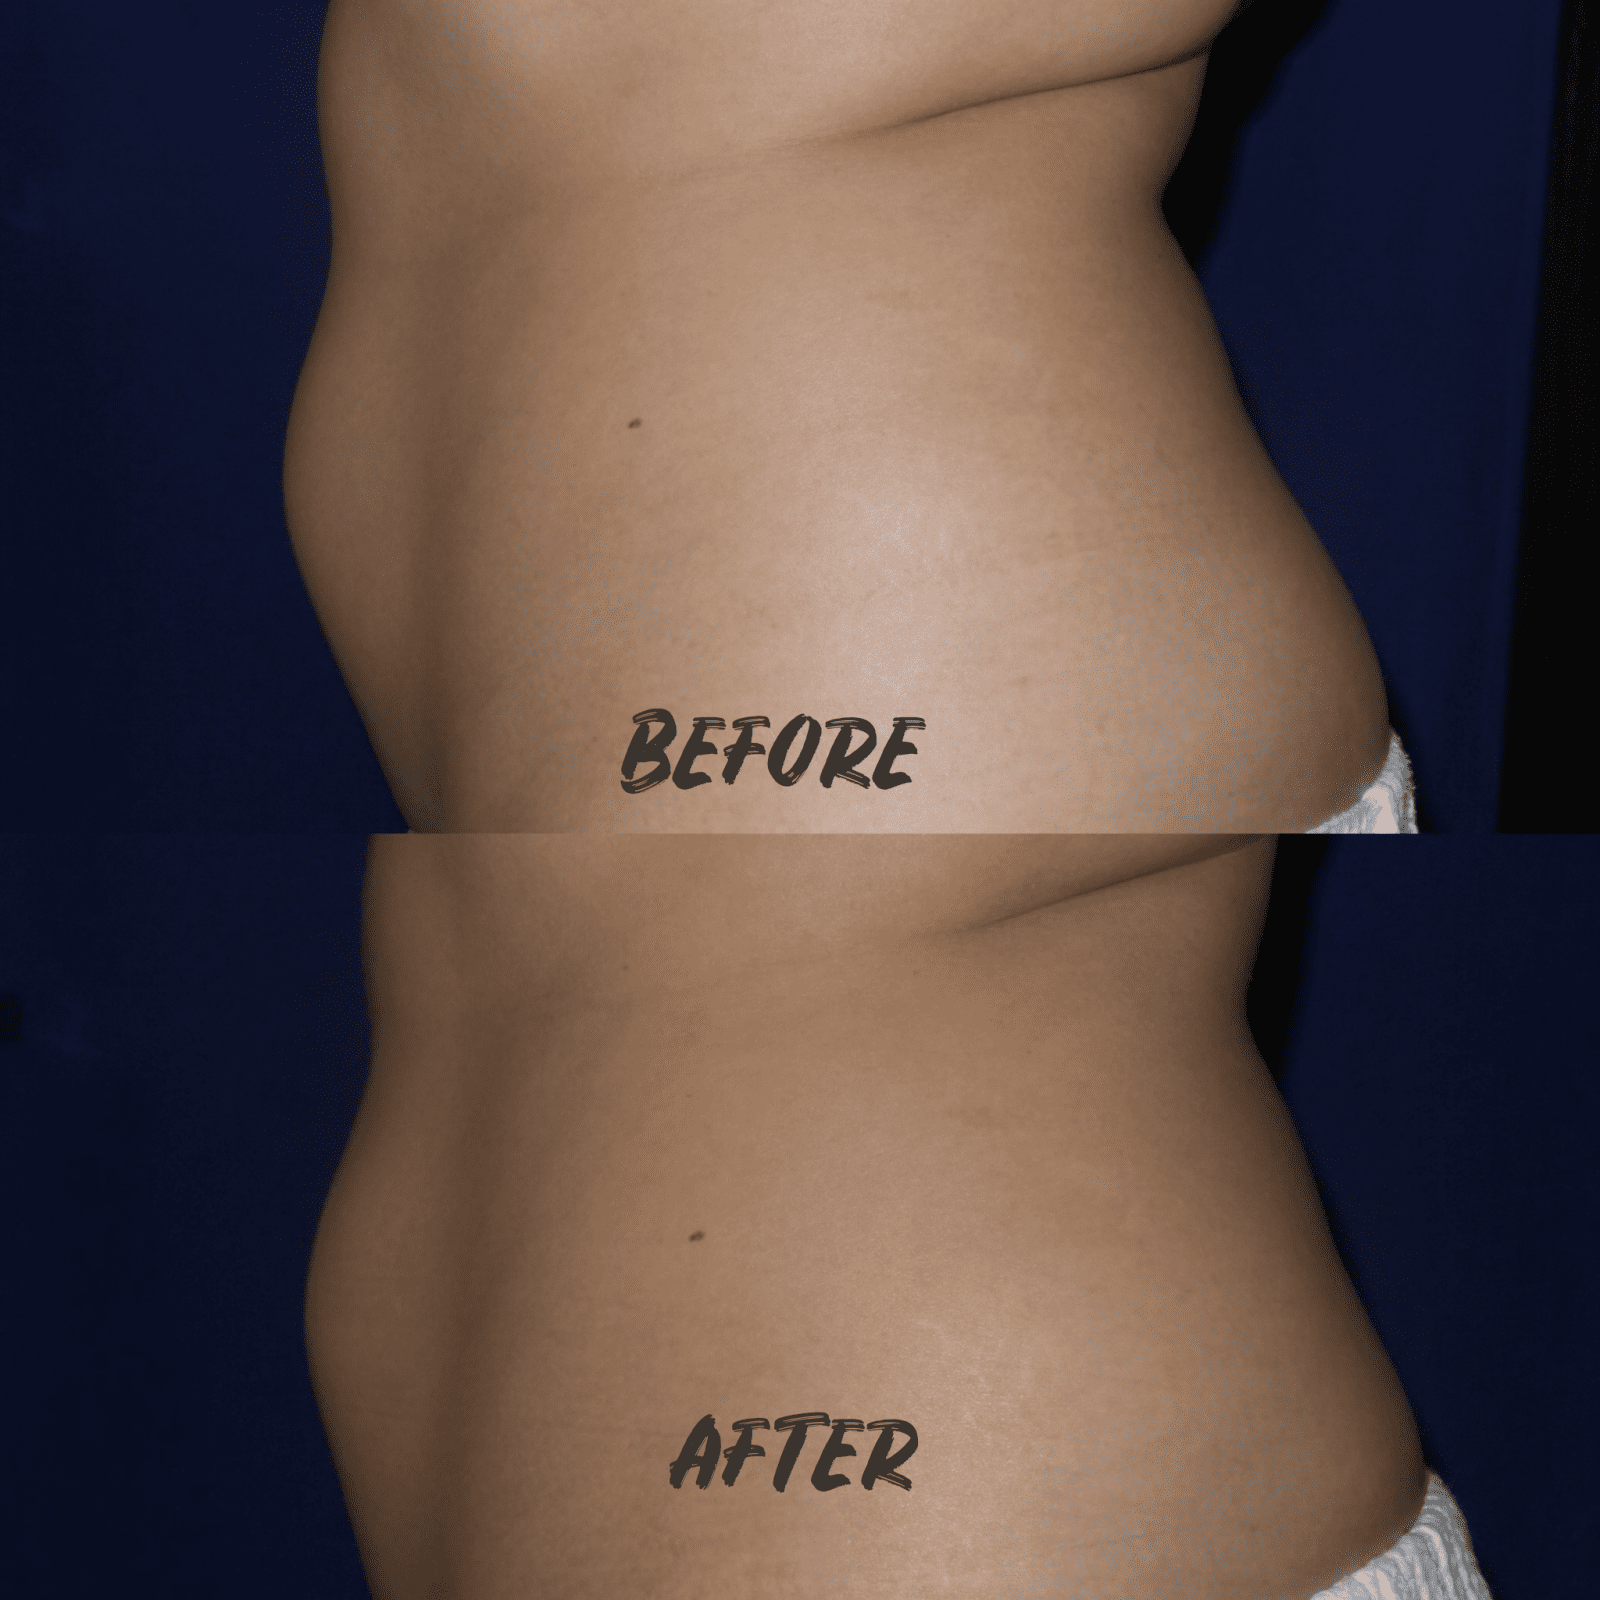 This is a before and after body contouring shot of the front view of my side profile from the left angle.